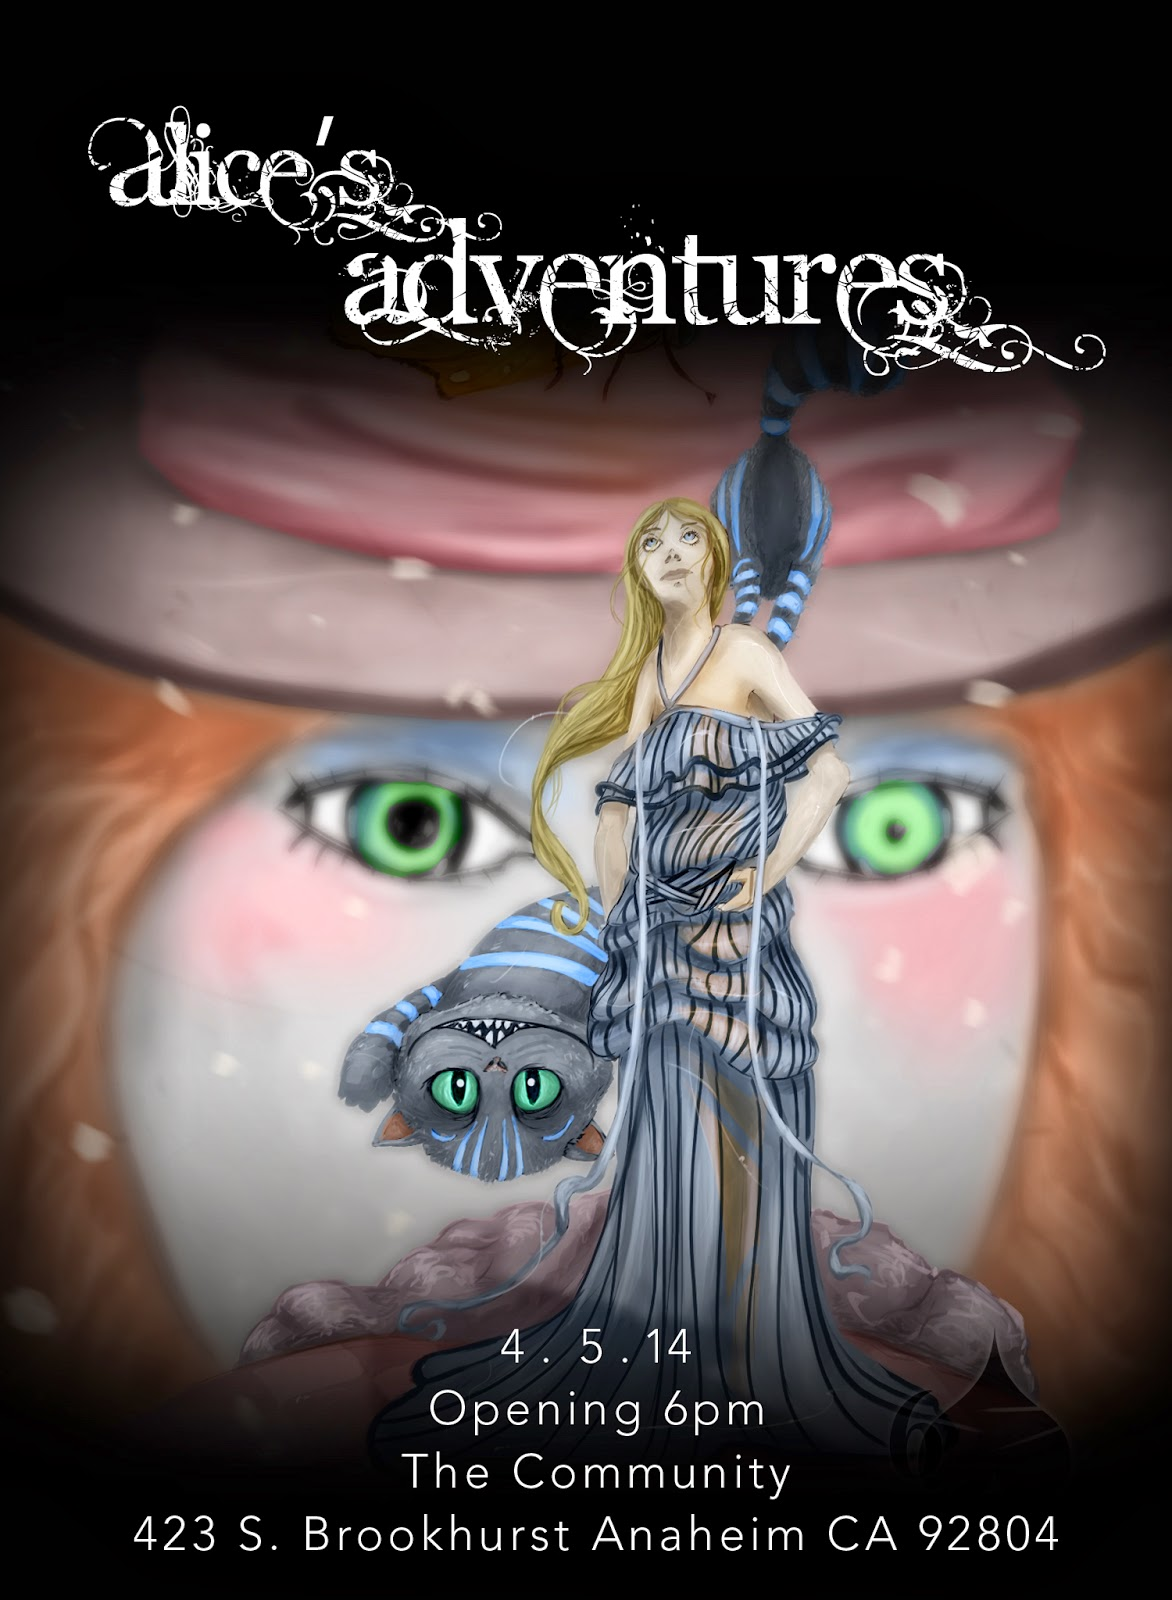 http://www.alittleknownshop.com/events/2014/4/5/alices-adventures-deck-of-art-cards-gallery